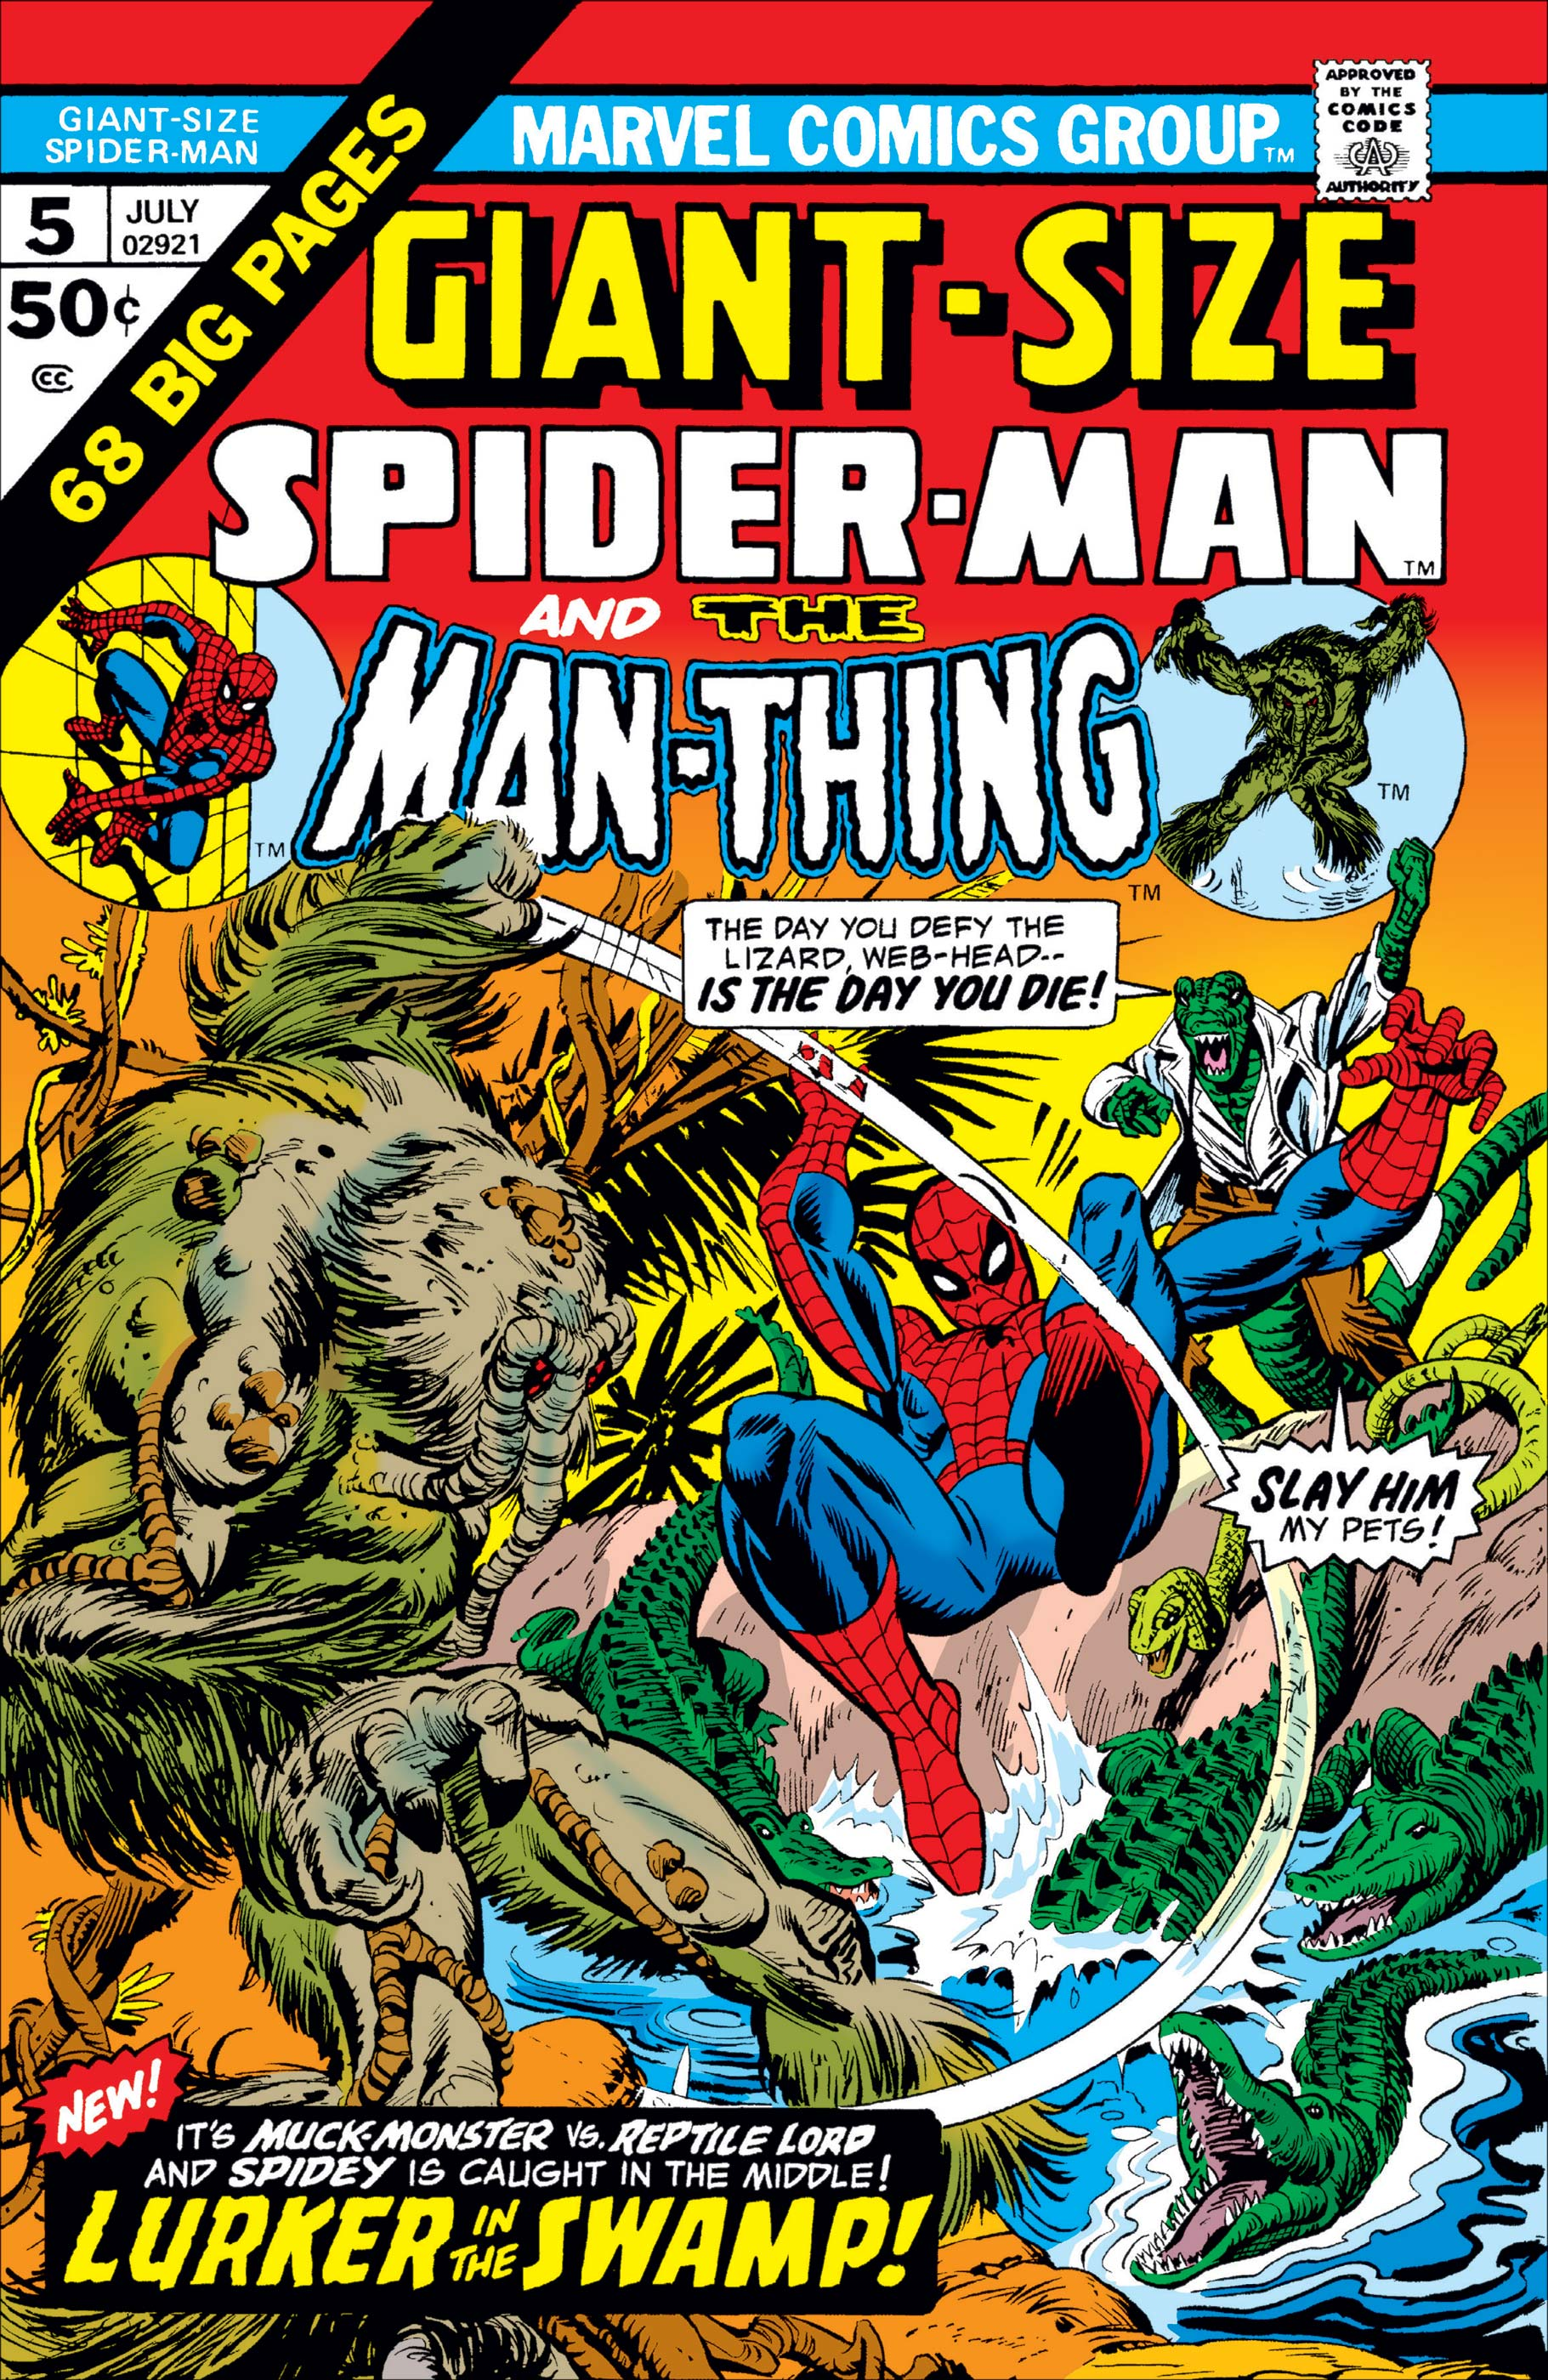 Giant-Size Spider-Man (1974) #5